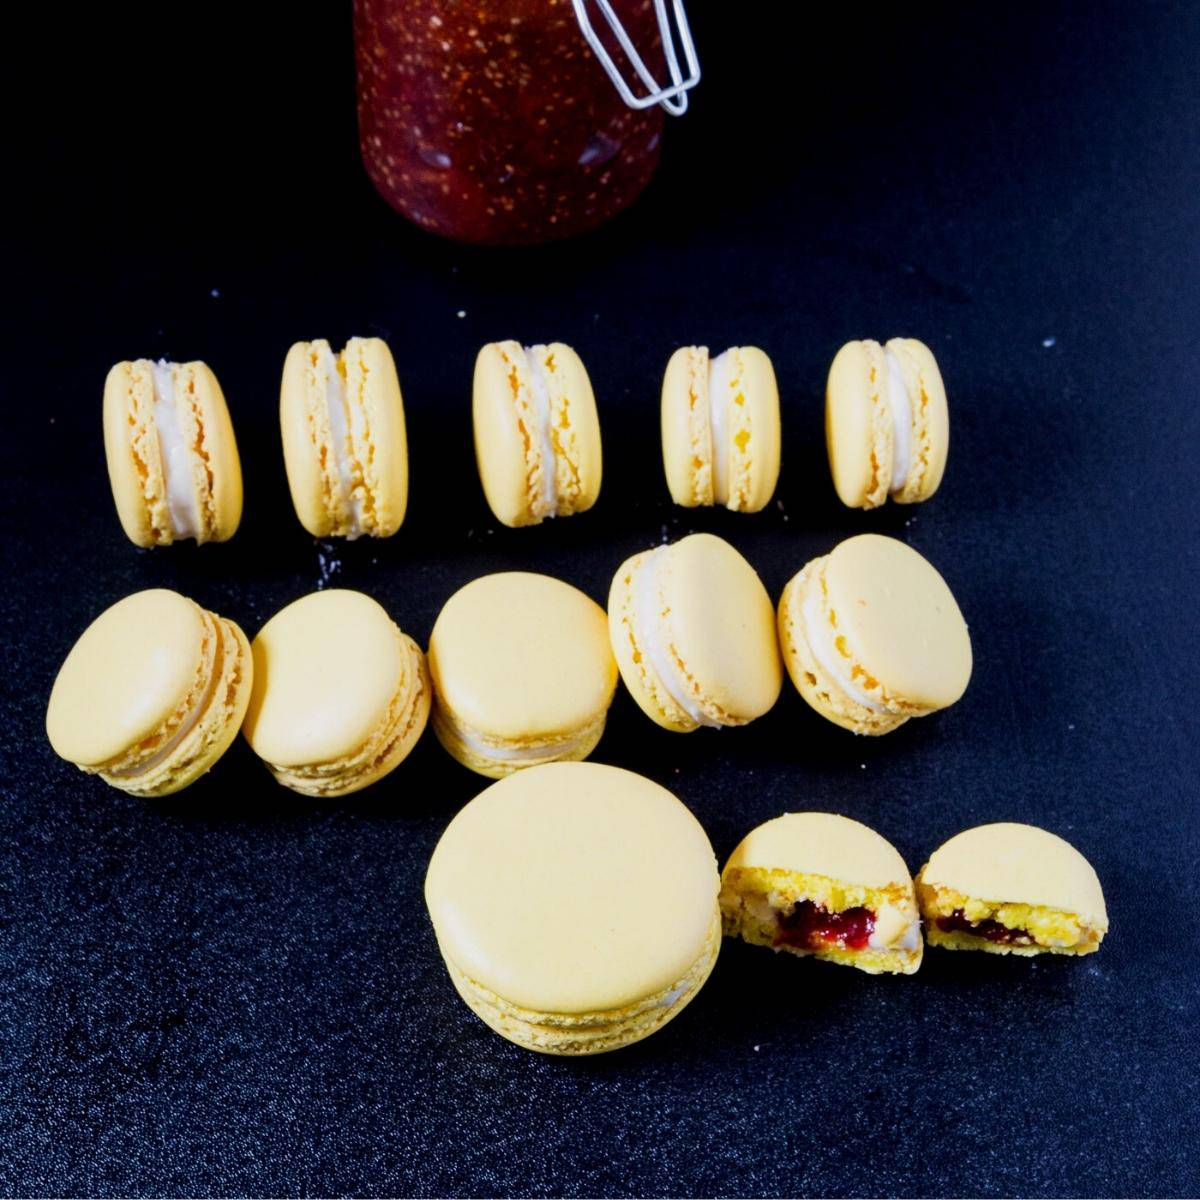 A stack of lemon macarons on the black board